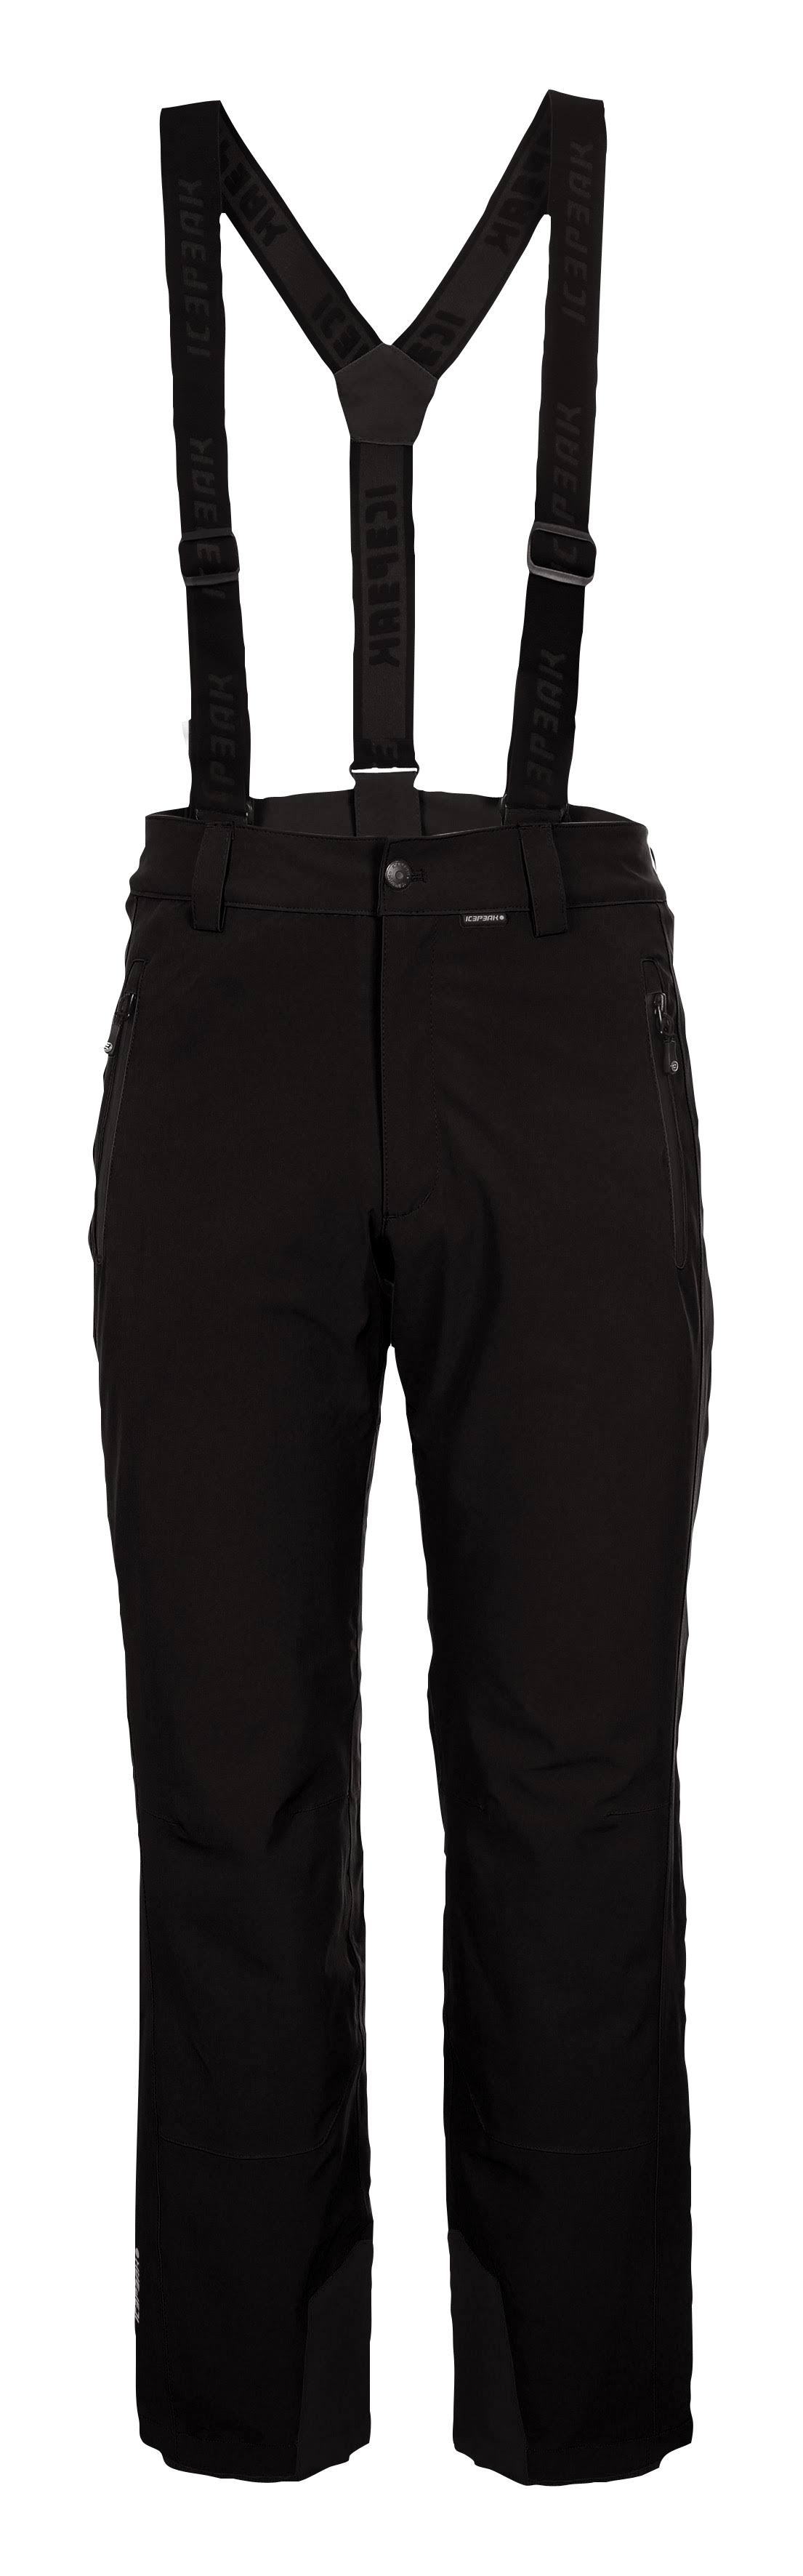 Icepeak - Noxos Black - Ski Pants Men